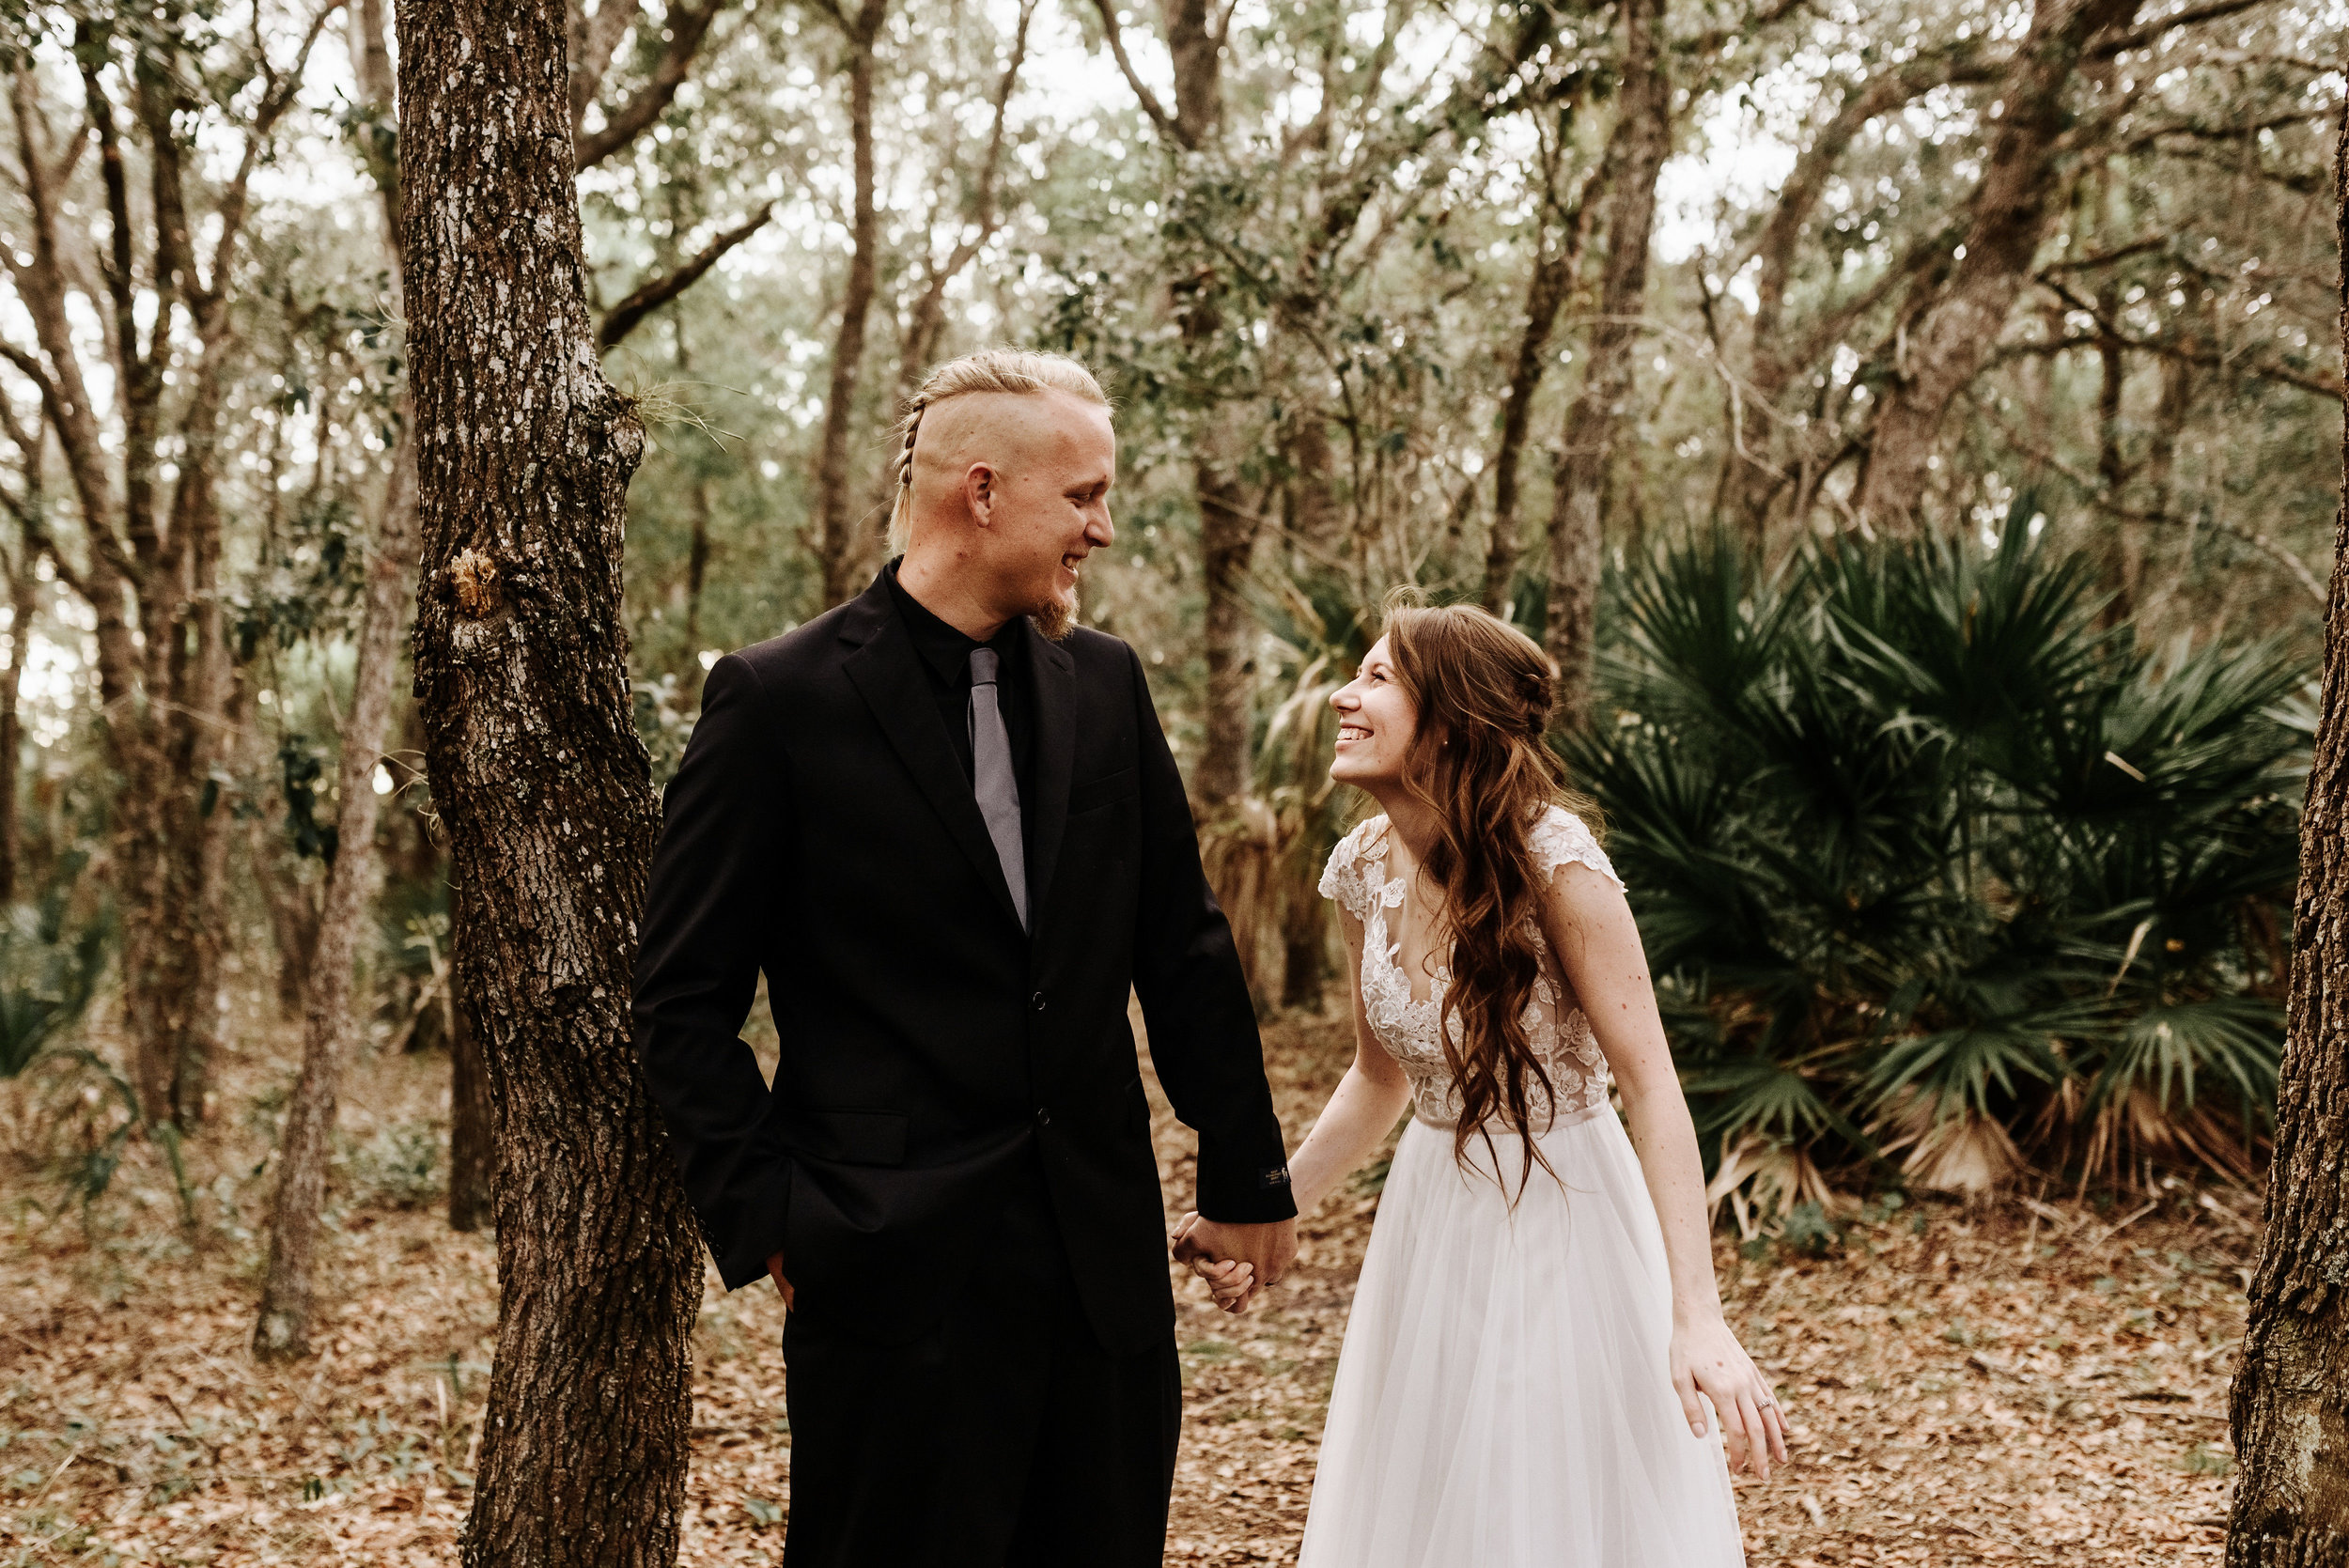 Jess_Micah_Portrait_Session_Wedding_Vero_Beach_Florida_Photography_by_V_0416.jpg